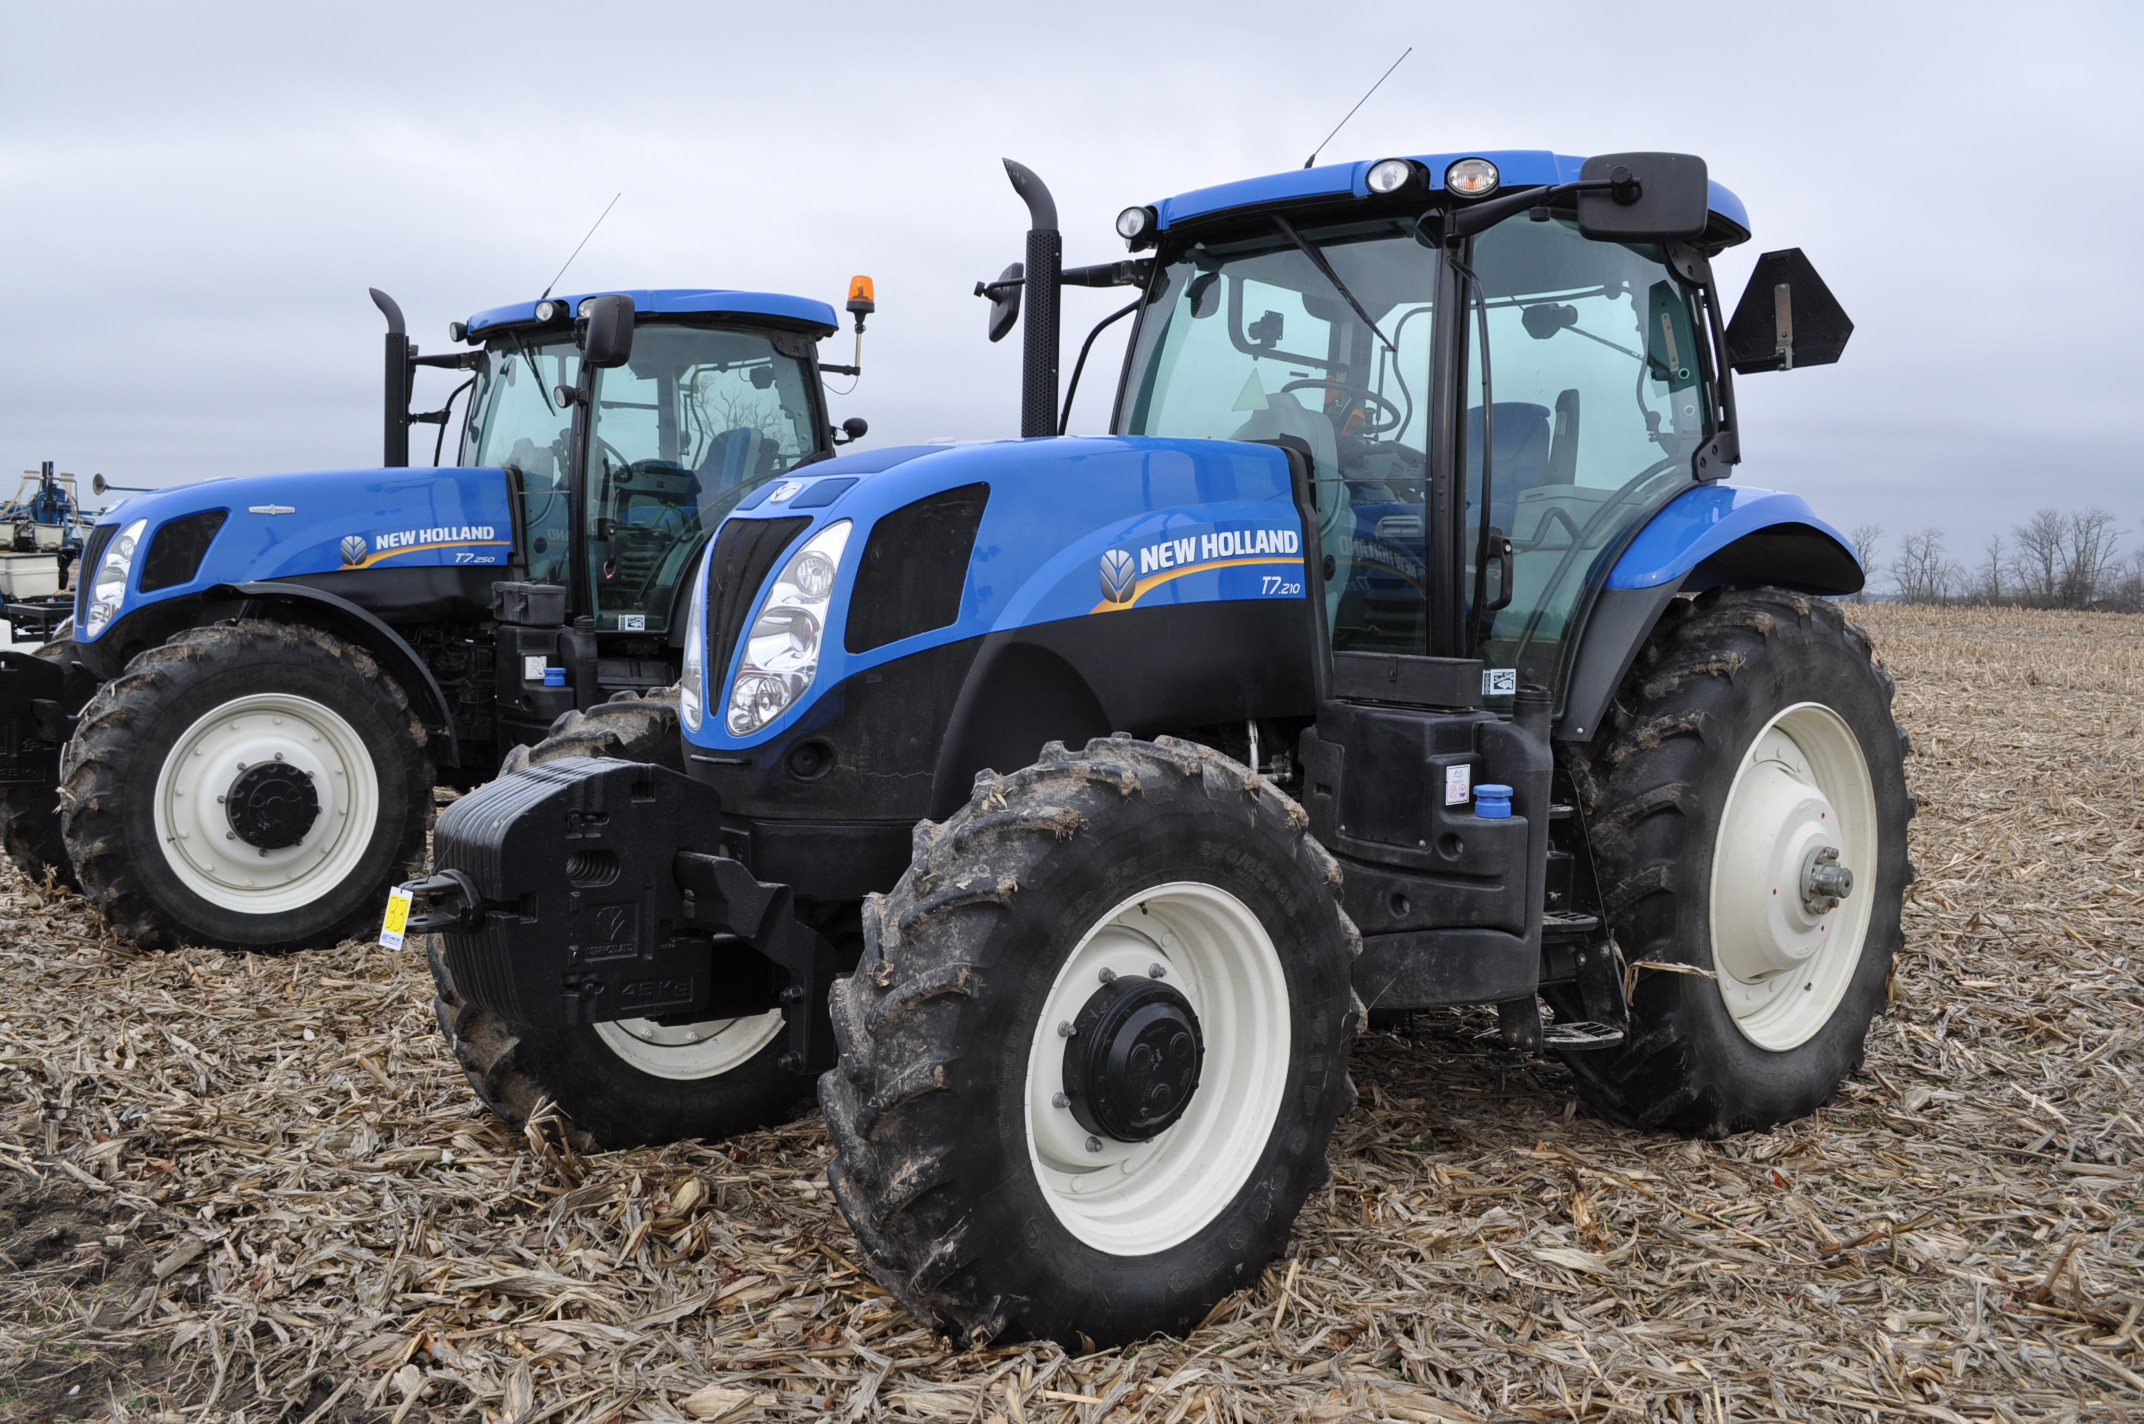 New Holland T7.210 MFWD tractor, 460/85 R 42 rear, 380/85 R 30 Firestone front, Super Steer